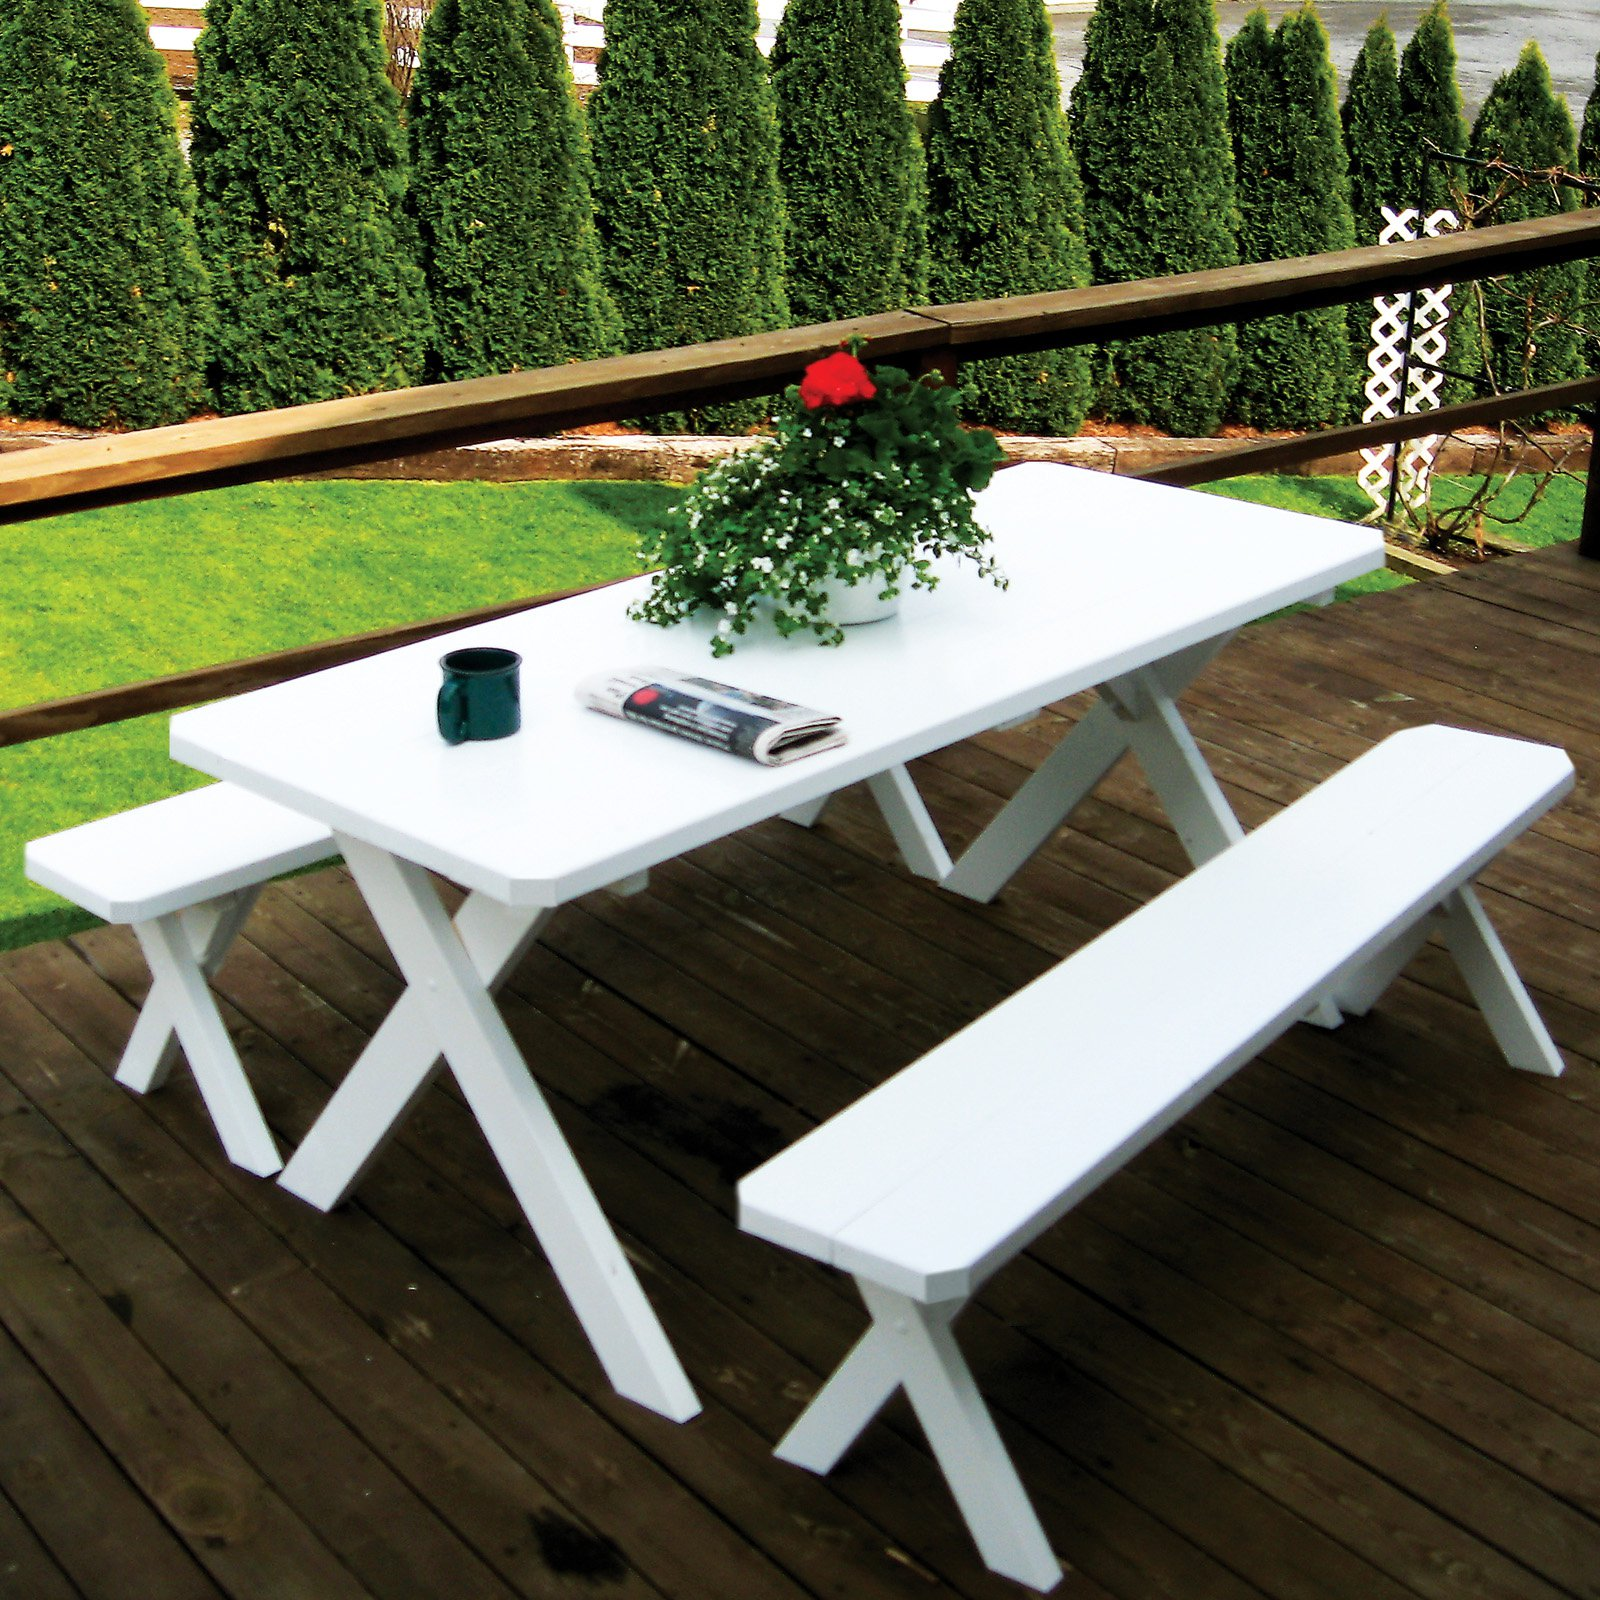 A & L Furniture Yellow Pine Cross Legged Picnic Table with 2 Benches